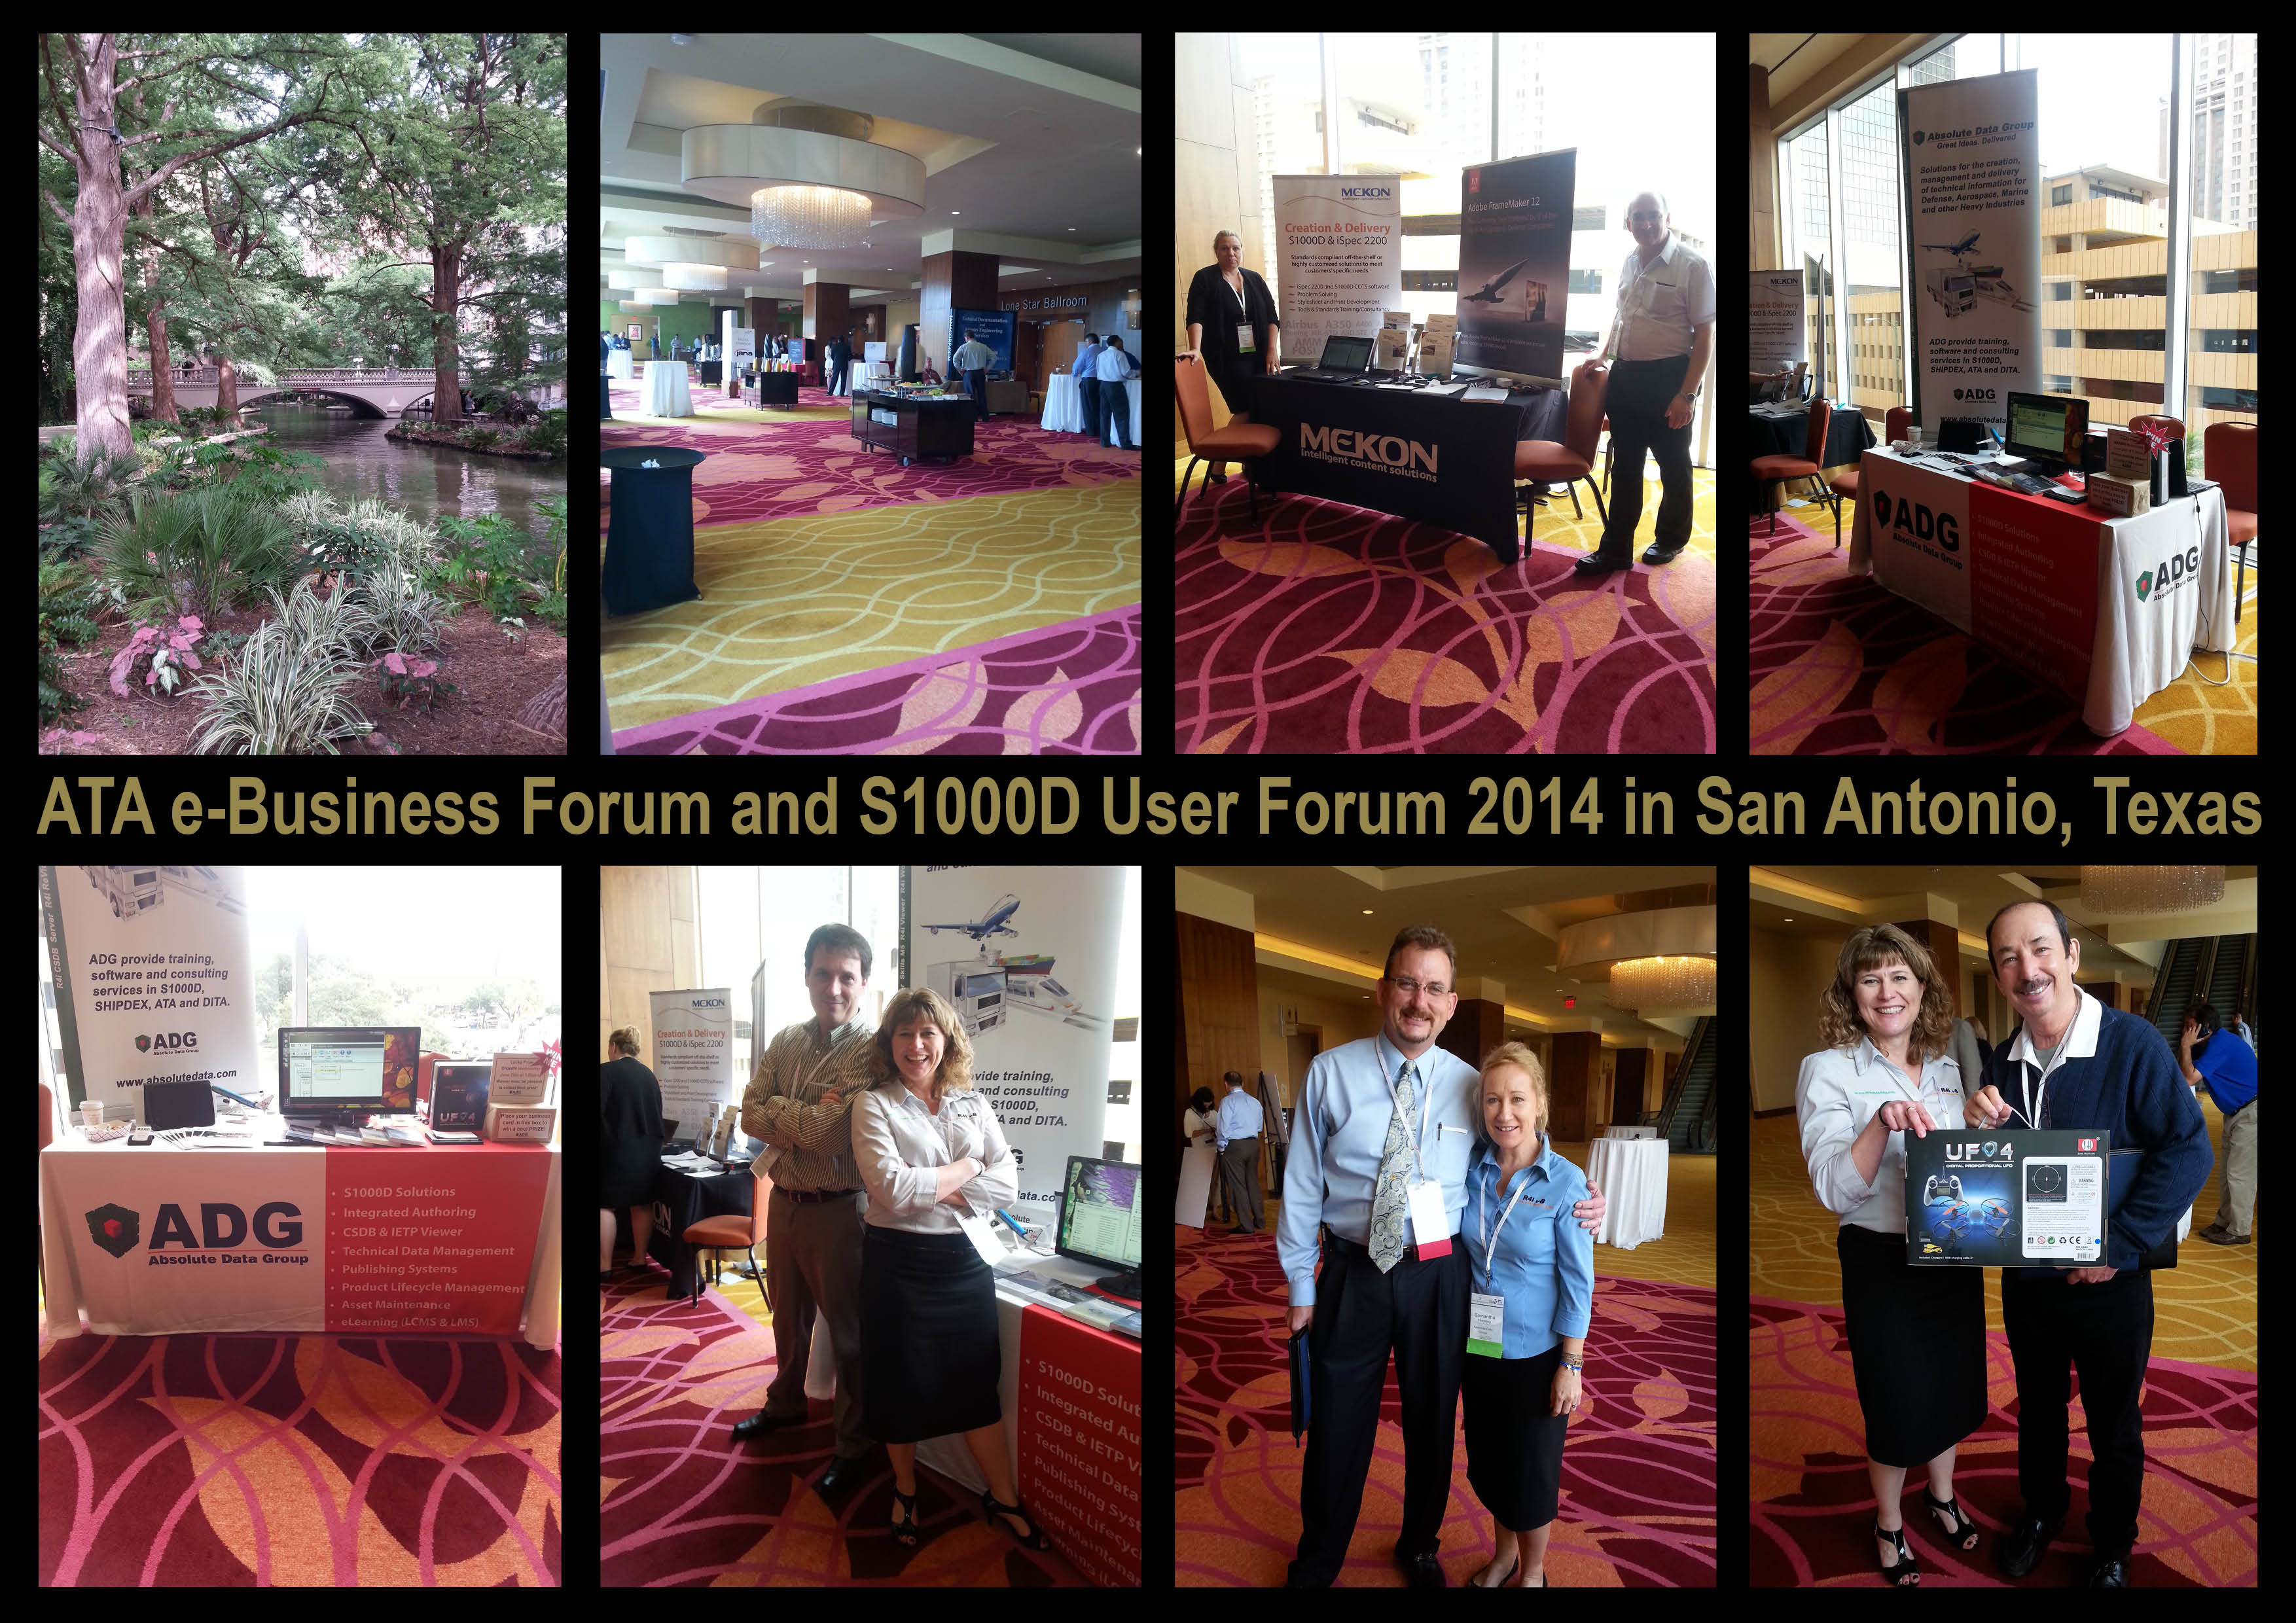 s1000d user forum 2014 collage